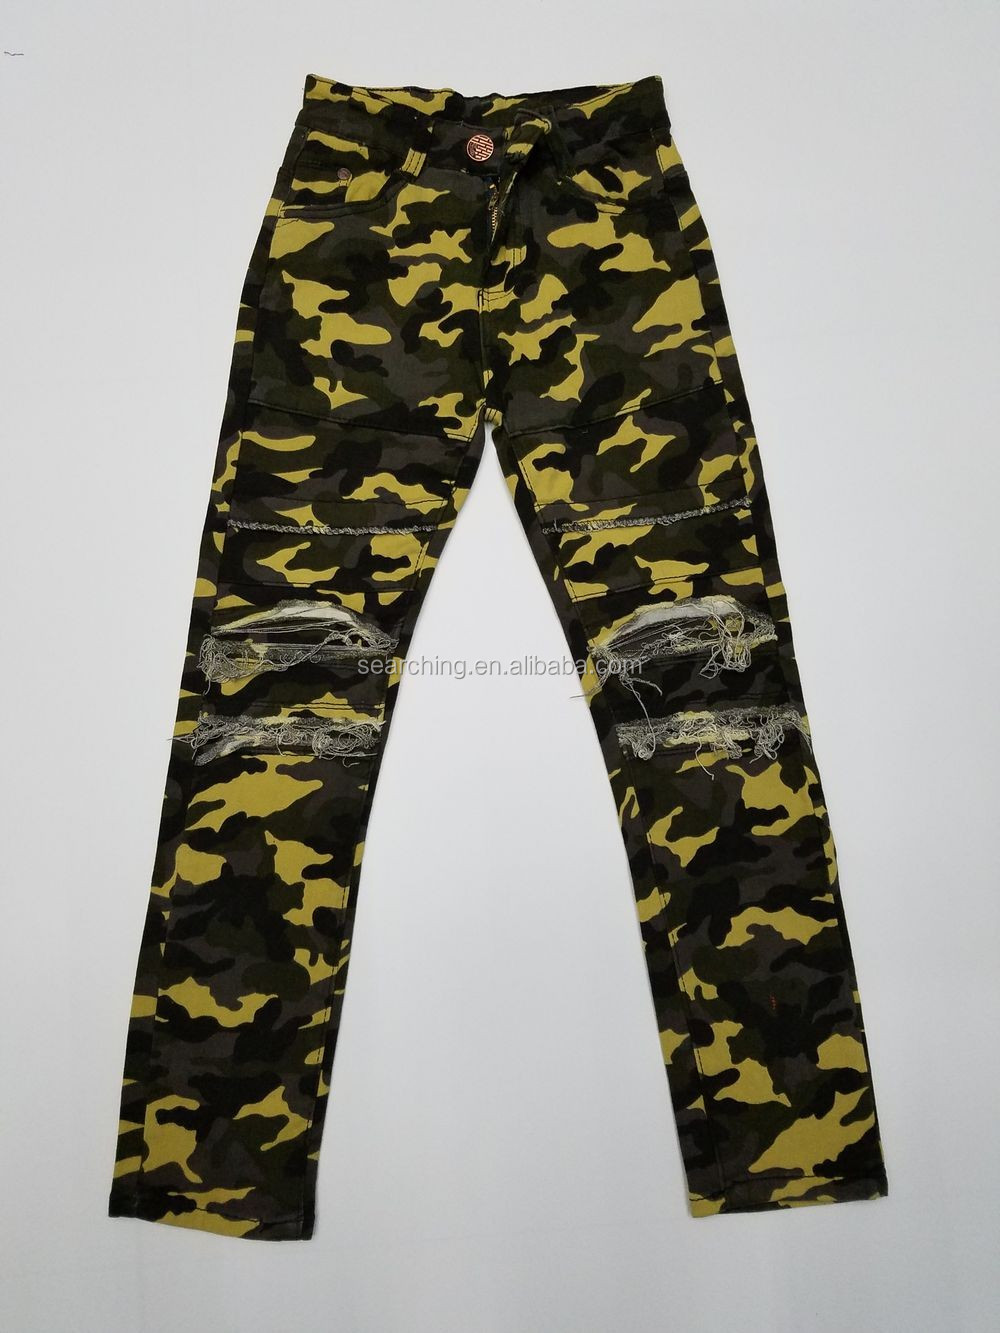 Hot Sale Fashionable Outdoor Casual cargo Camouflage kids boys Military Style Cargo Pants camo pants